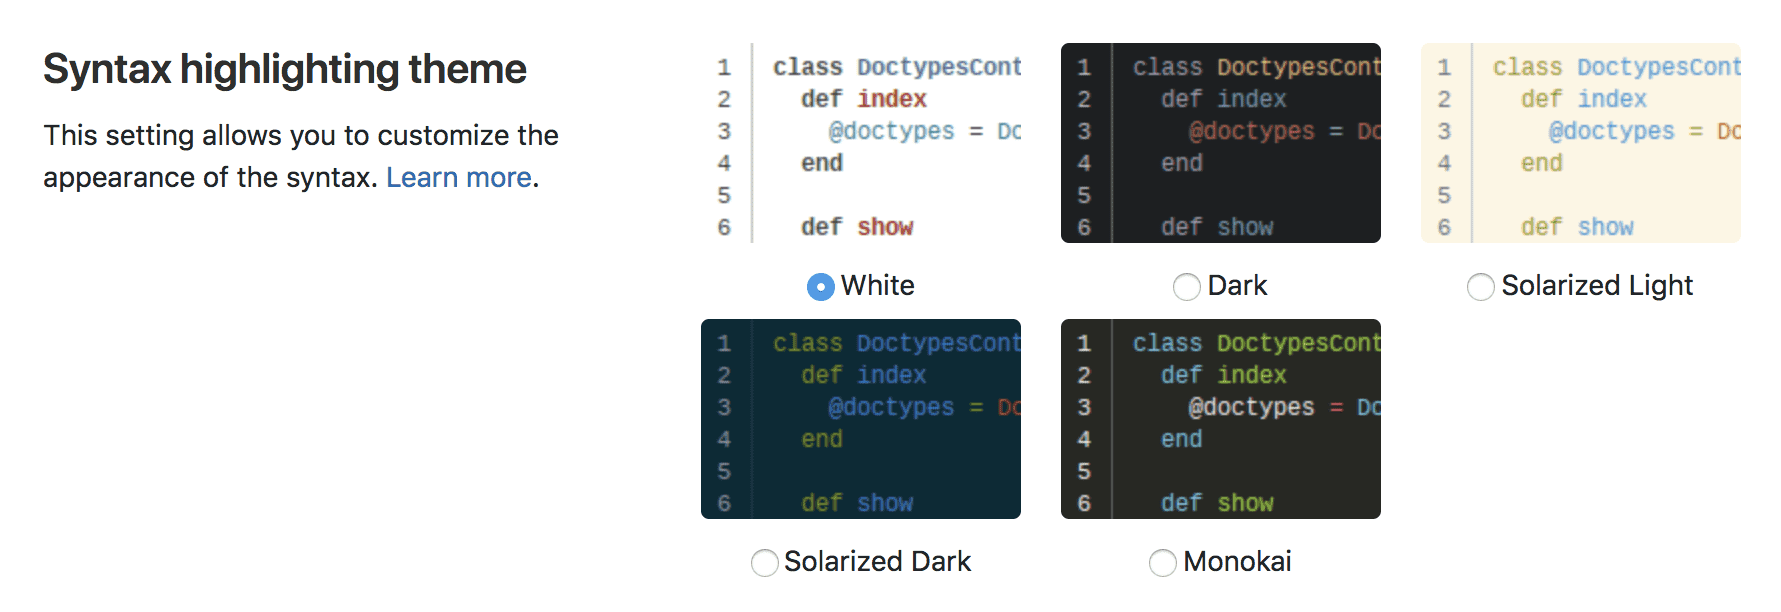 doc/user/profile/img/profile-preferences-syntax-themes.png